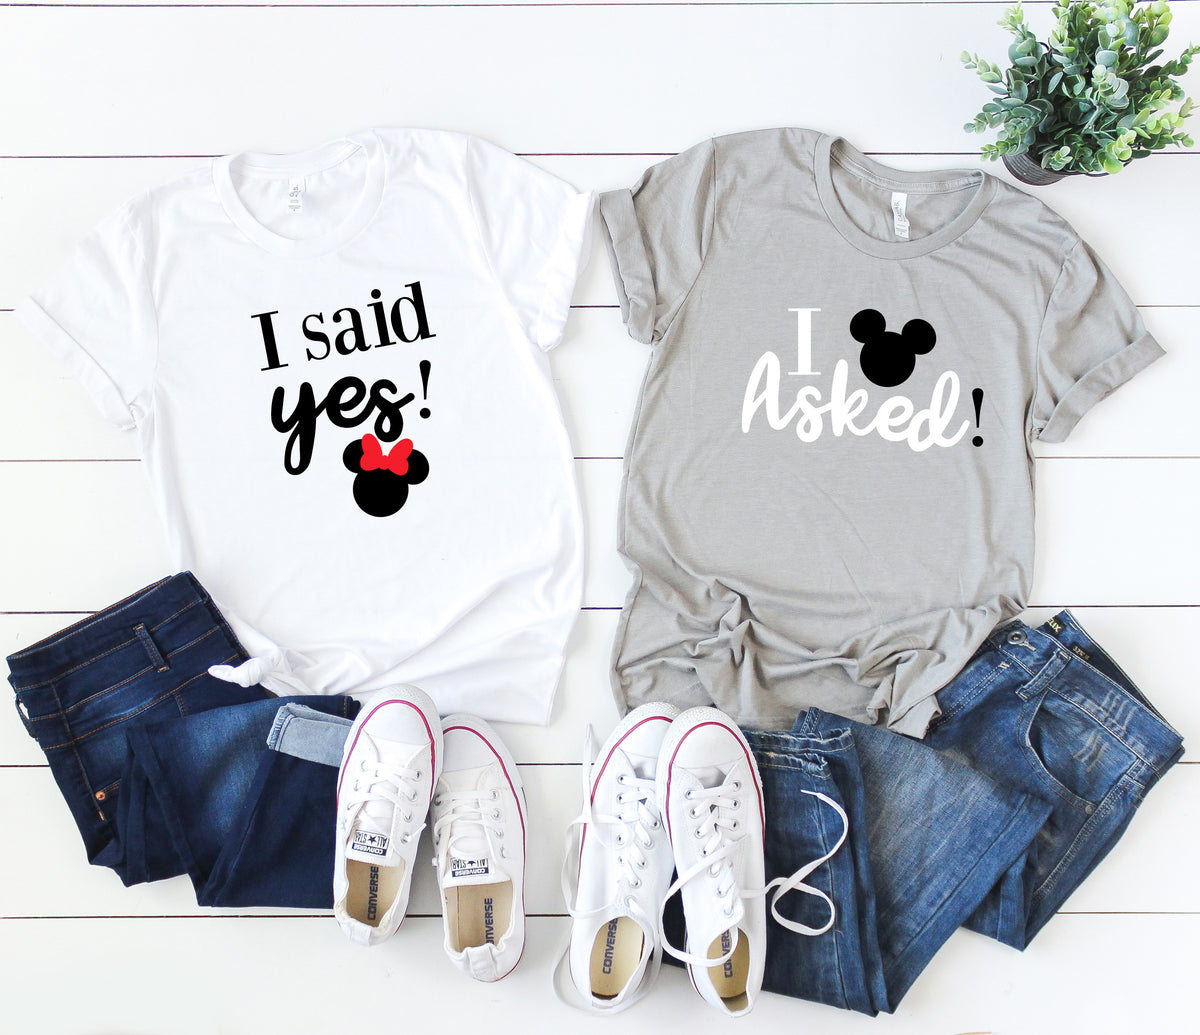 c67ab67e I asked/I said Yes, Magical Engagement Shirts For Couples, Engaged In –  CraftShopEtc